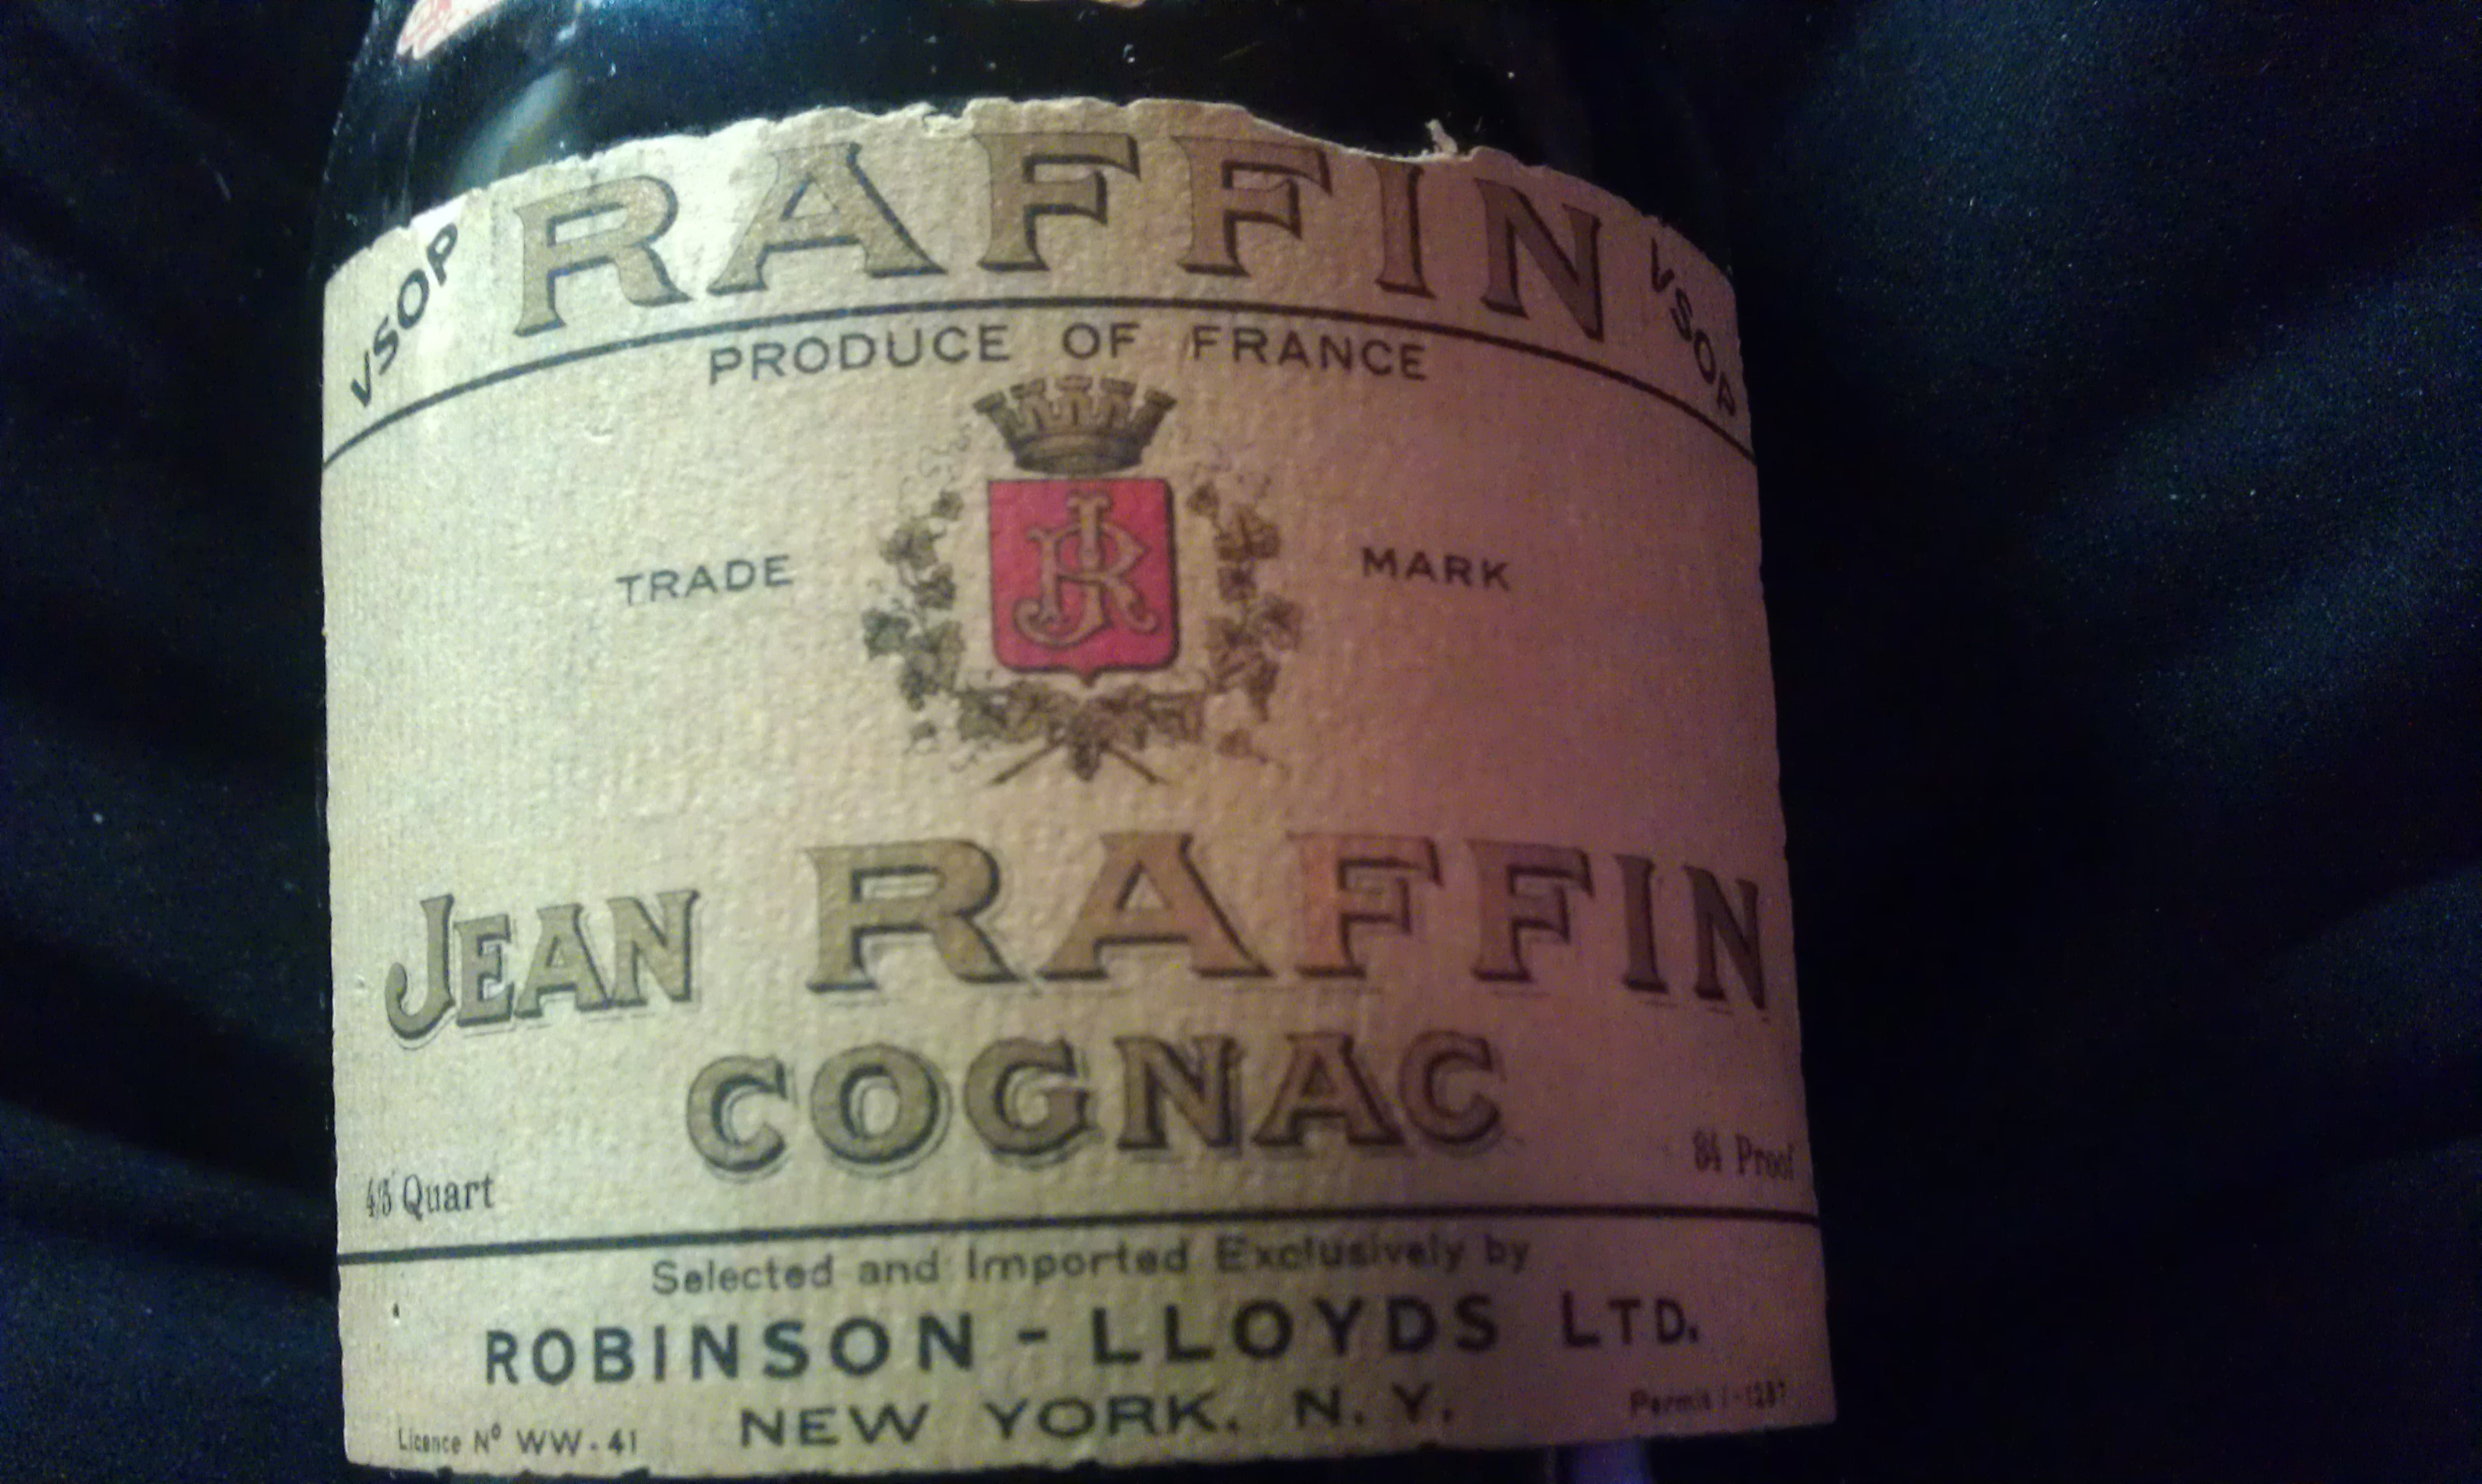 A Reader has a bottle of Jean Raffin Cognac VSOP 20 Years Old